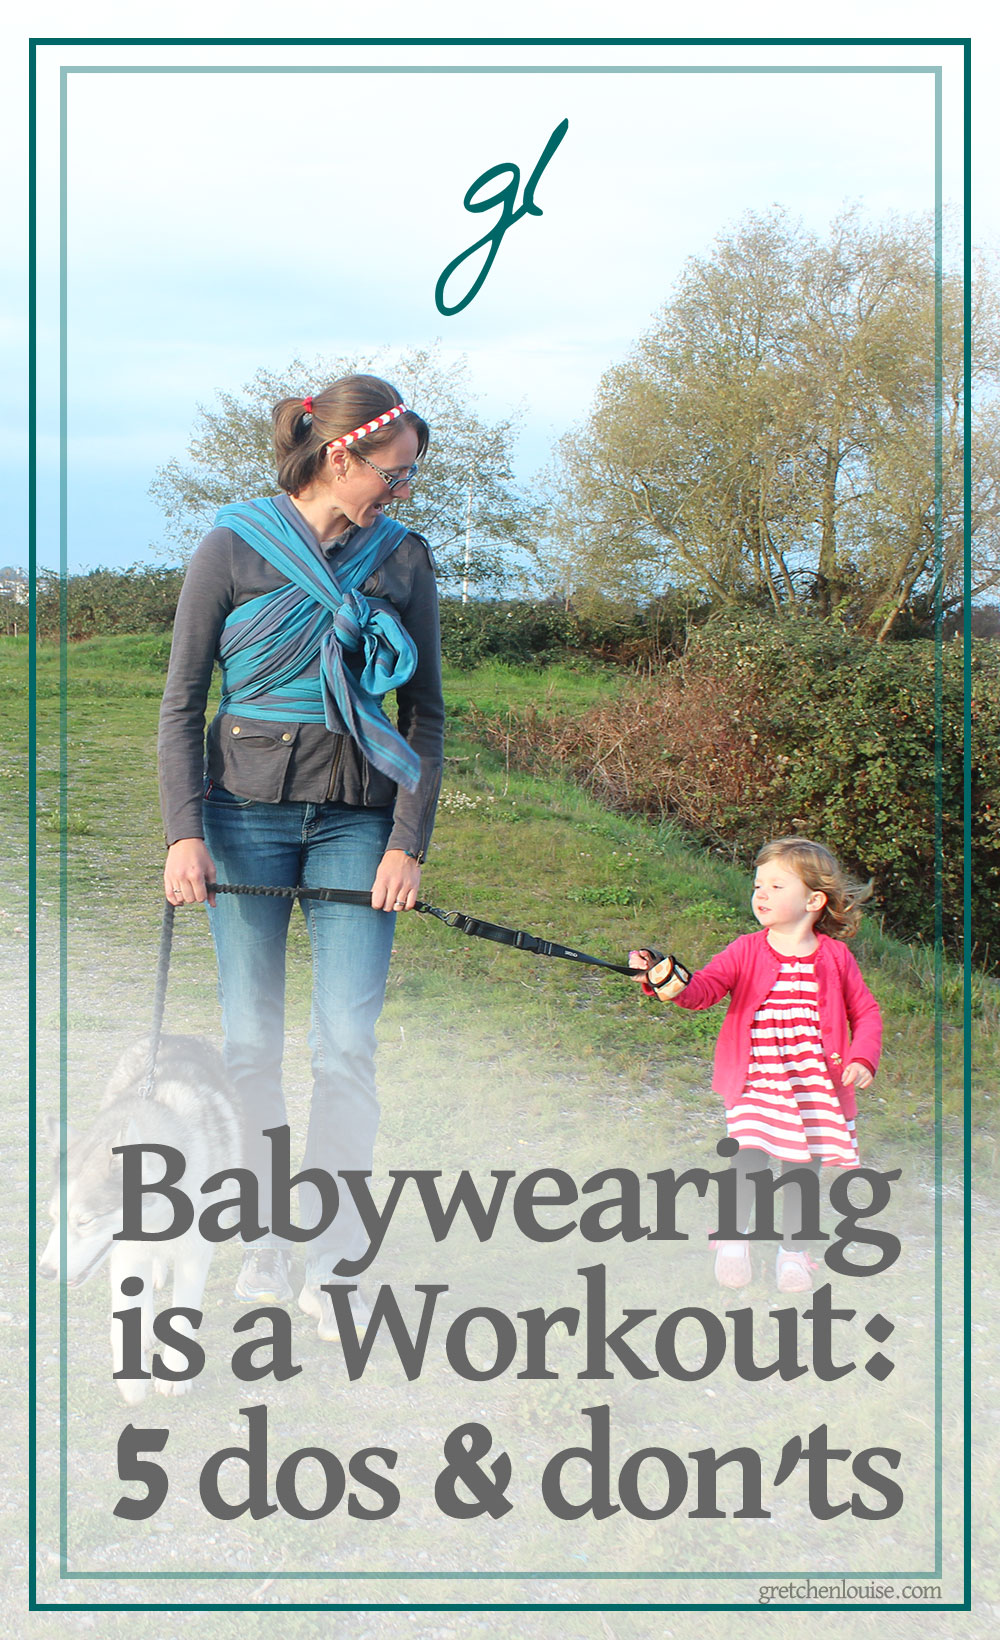 Motherhood is a workout; babywearing takes mommy fitness to a whole new level. Learn how to be proactive and avoid injury so that you can enjoy a long, healthy babywearing experience. via @GretLouise